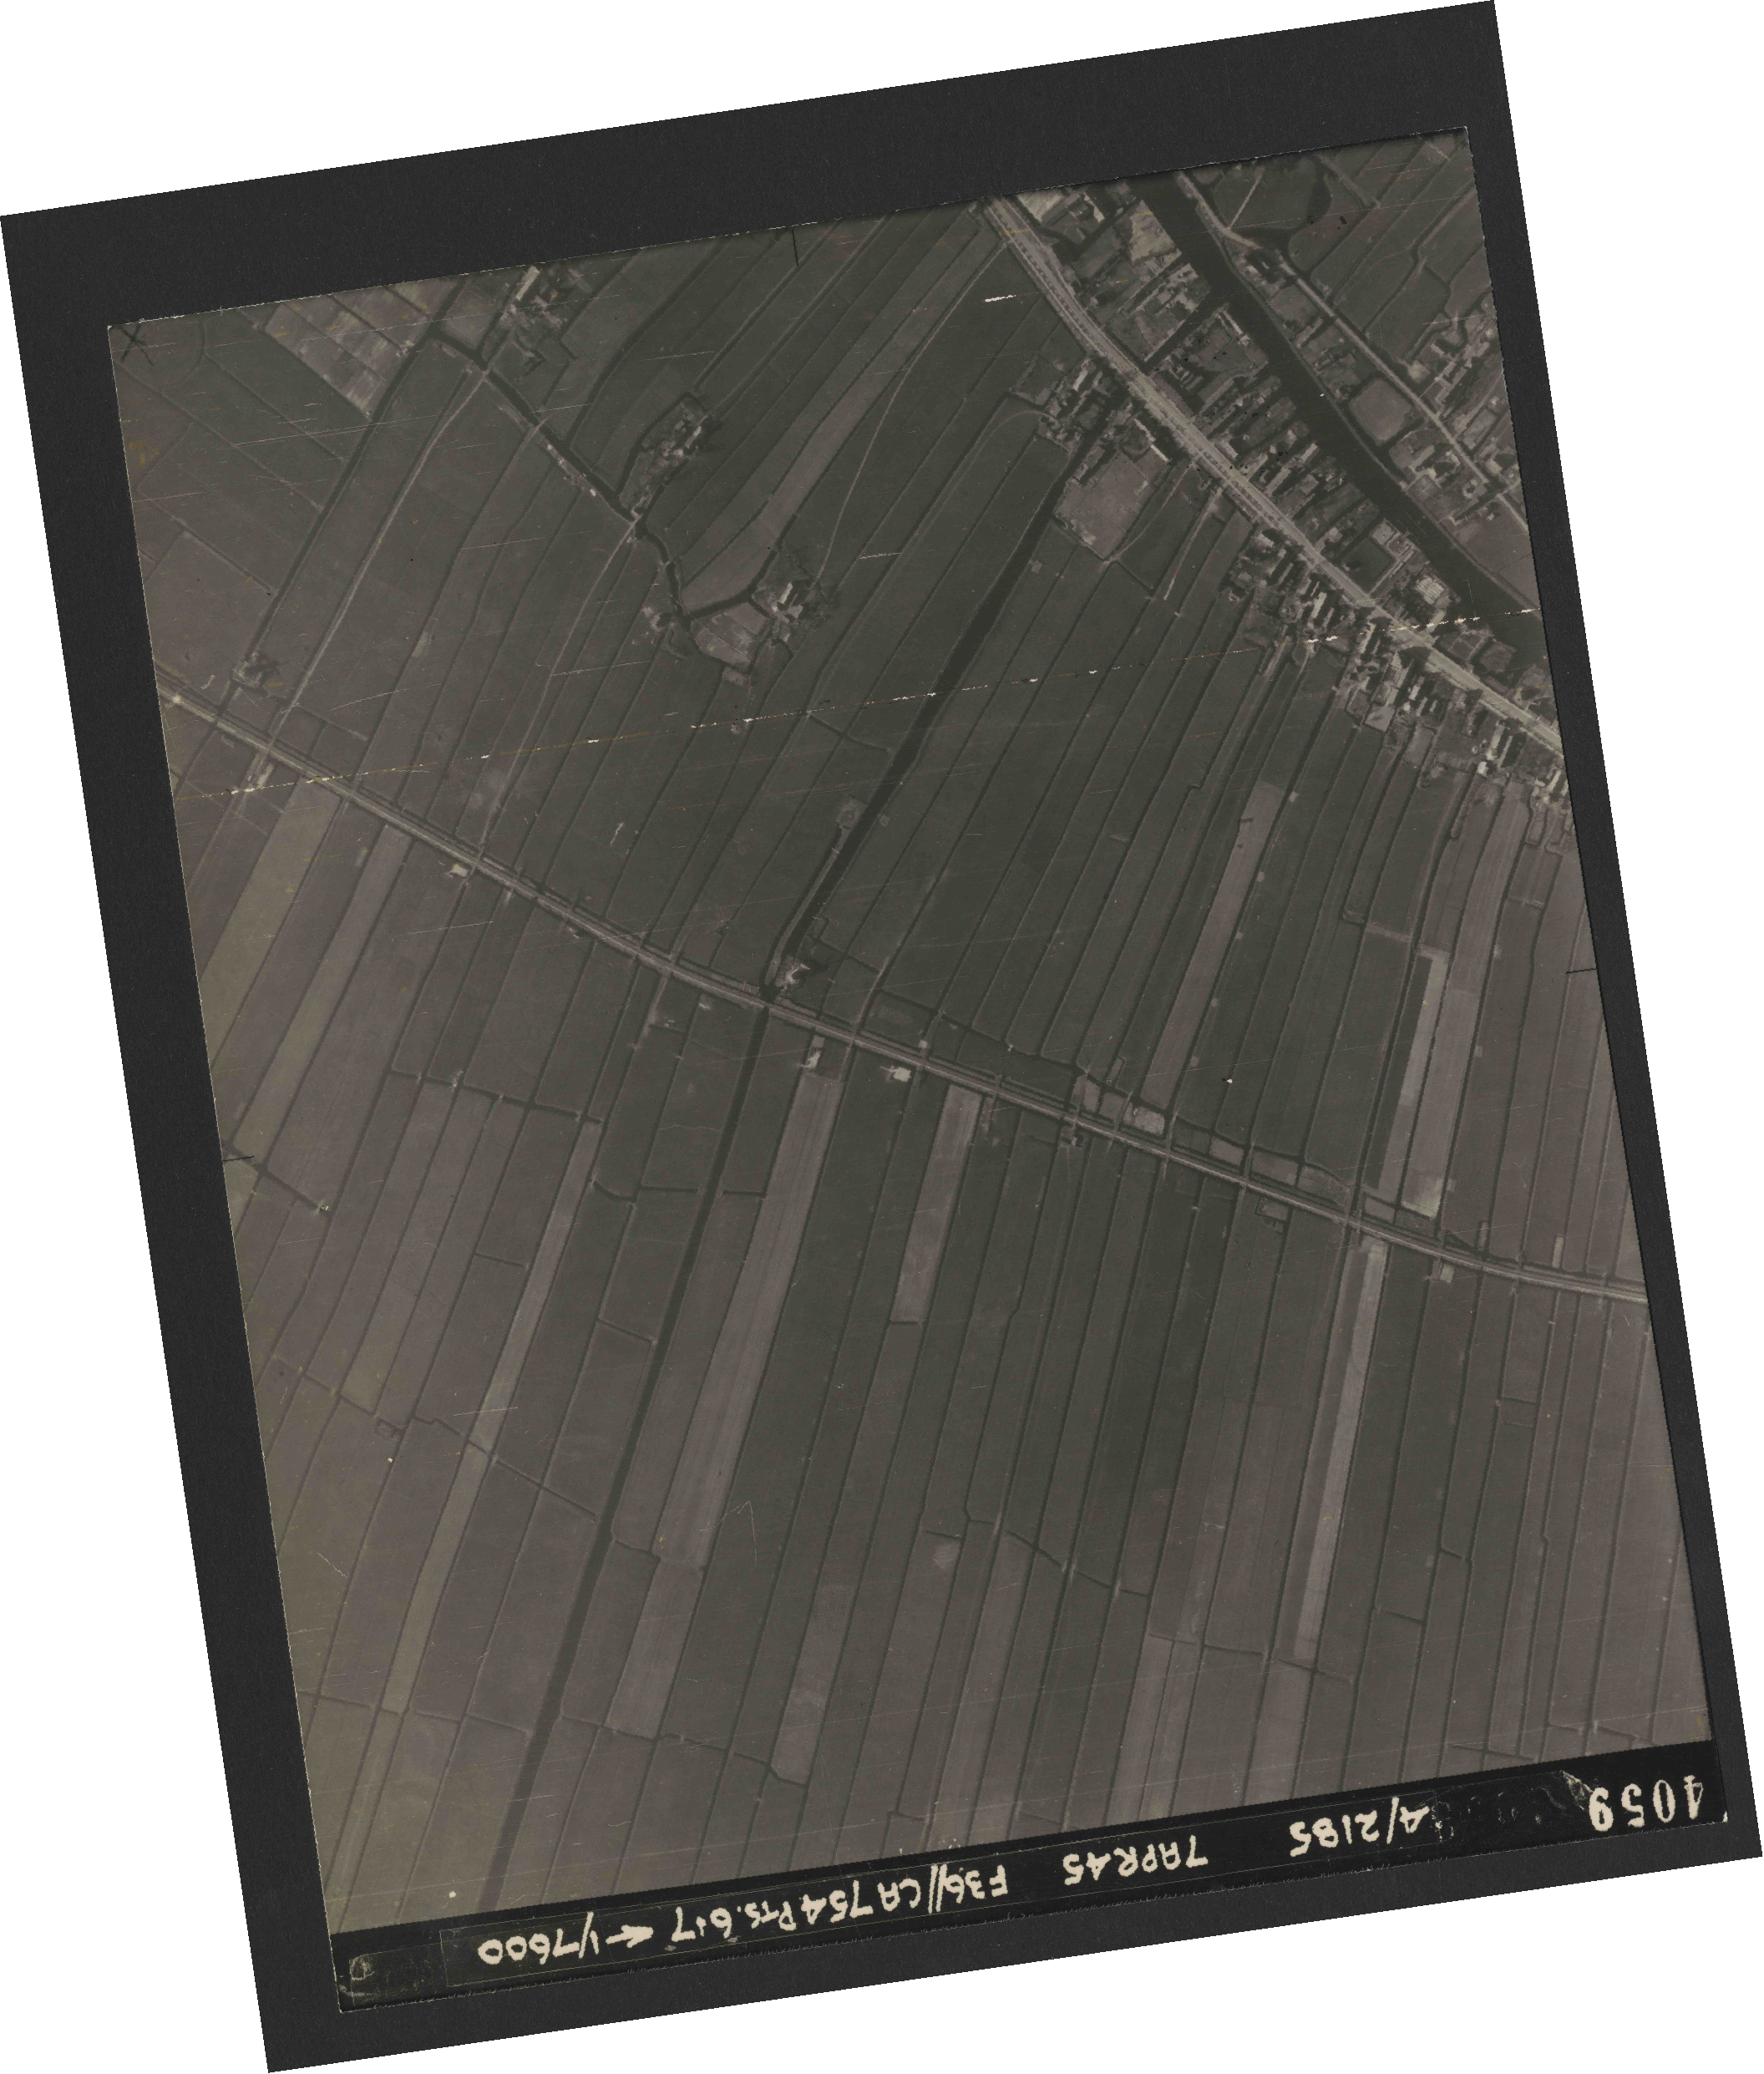 Collection RAF aerial photos 1940-1945 - flight 303, run 06, photo 4059